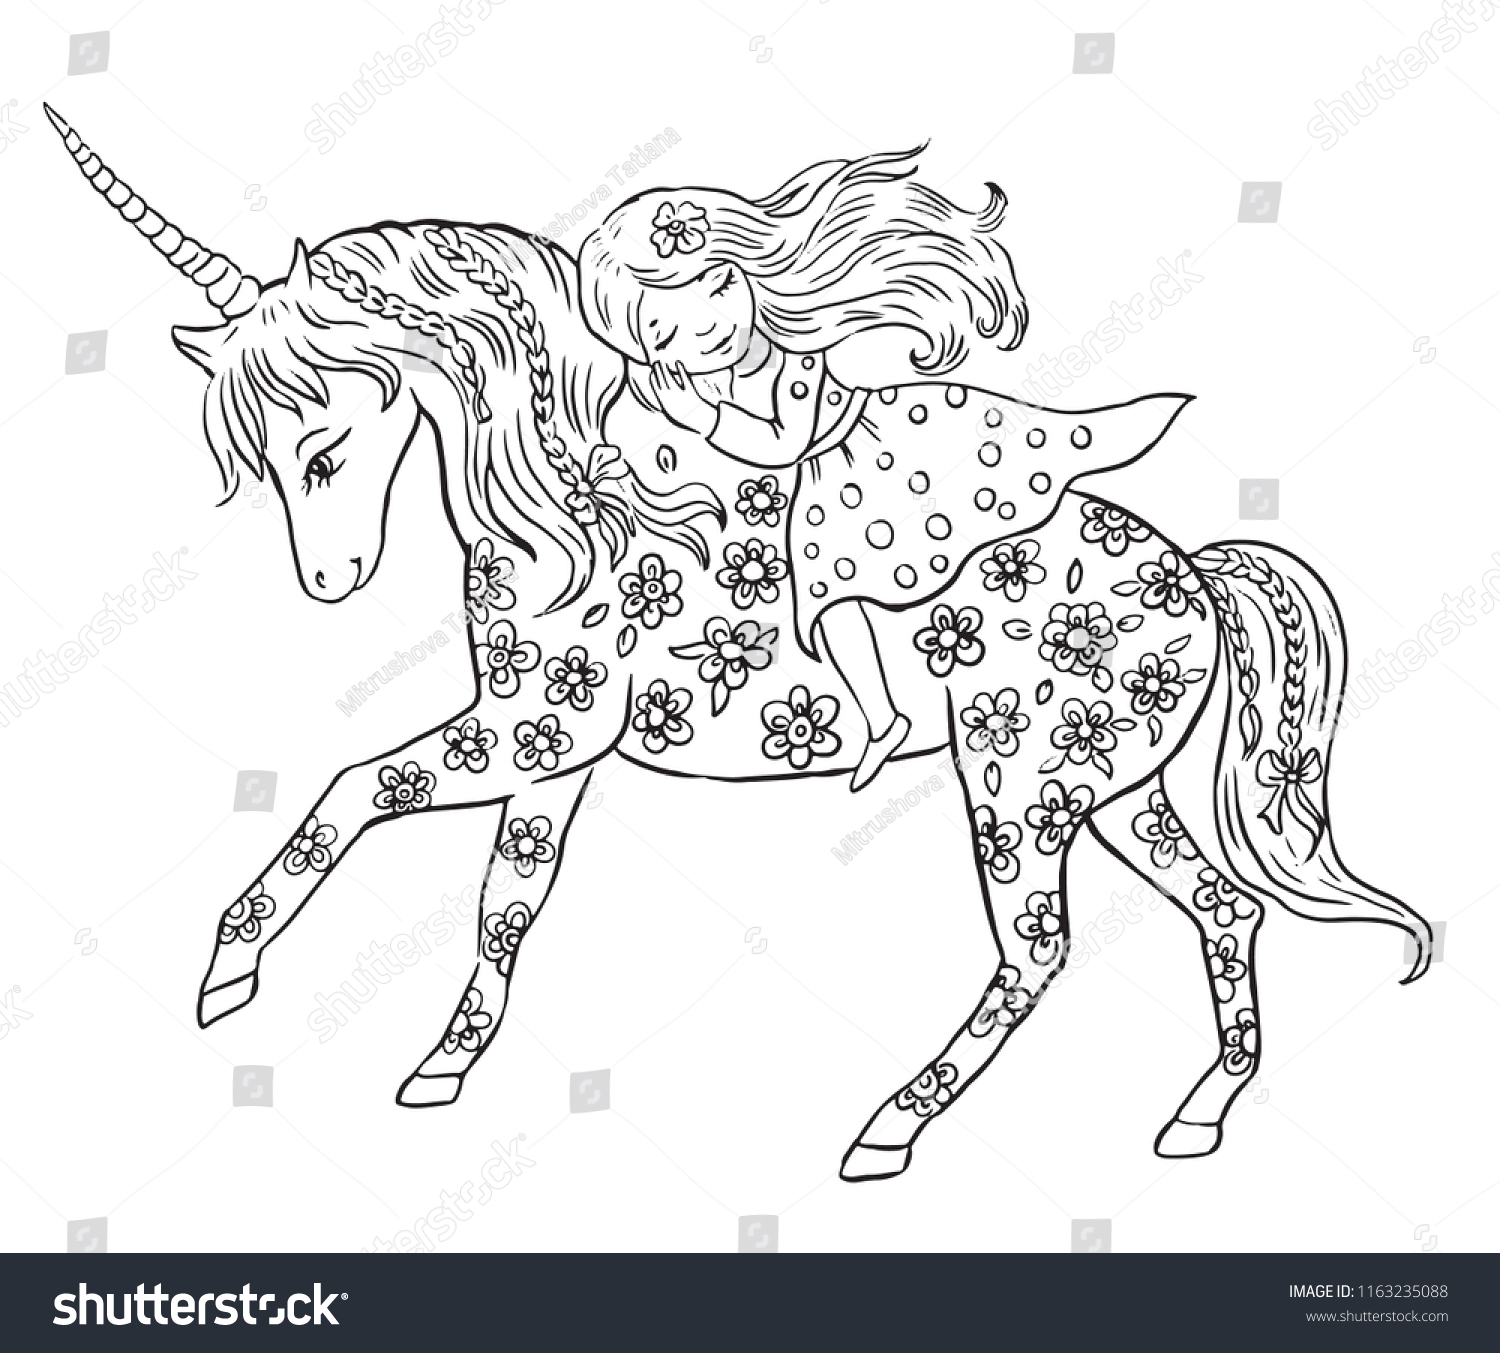 Unicorn Little Princesscoloring Page Kids Stock Vector Royalty Free 1163235088